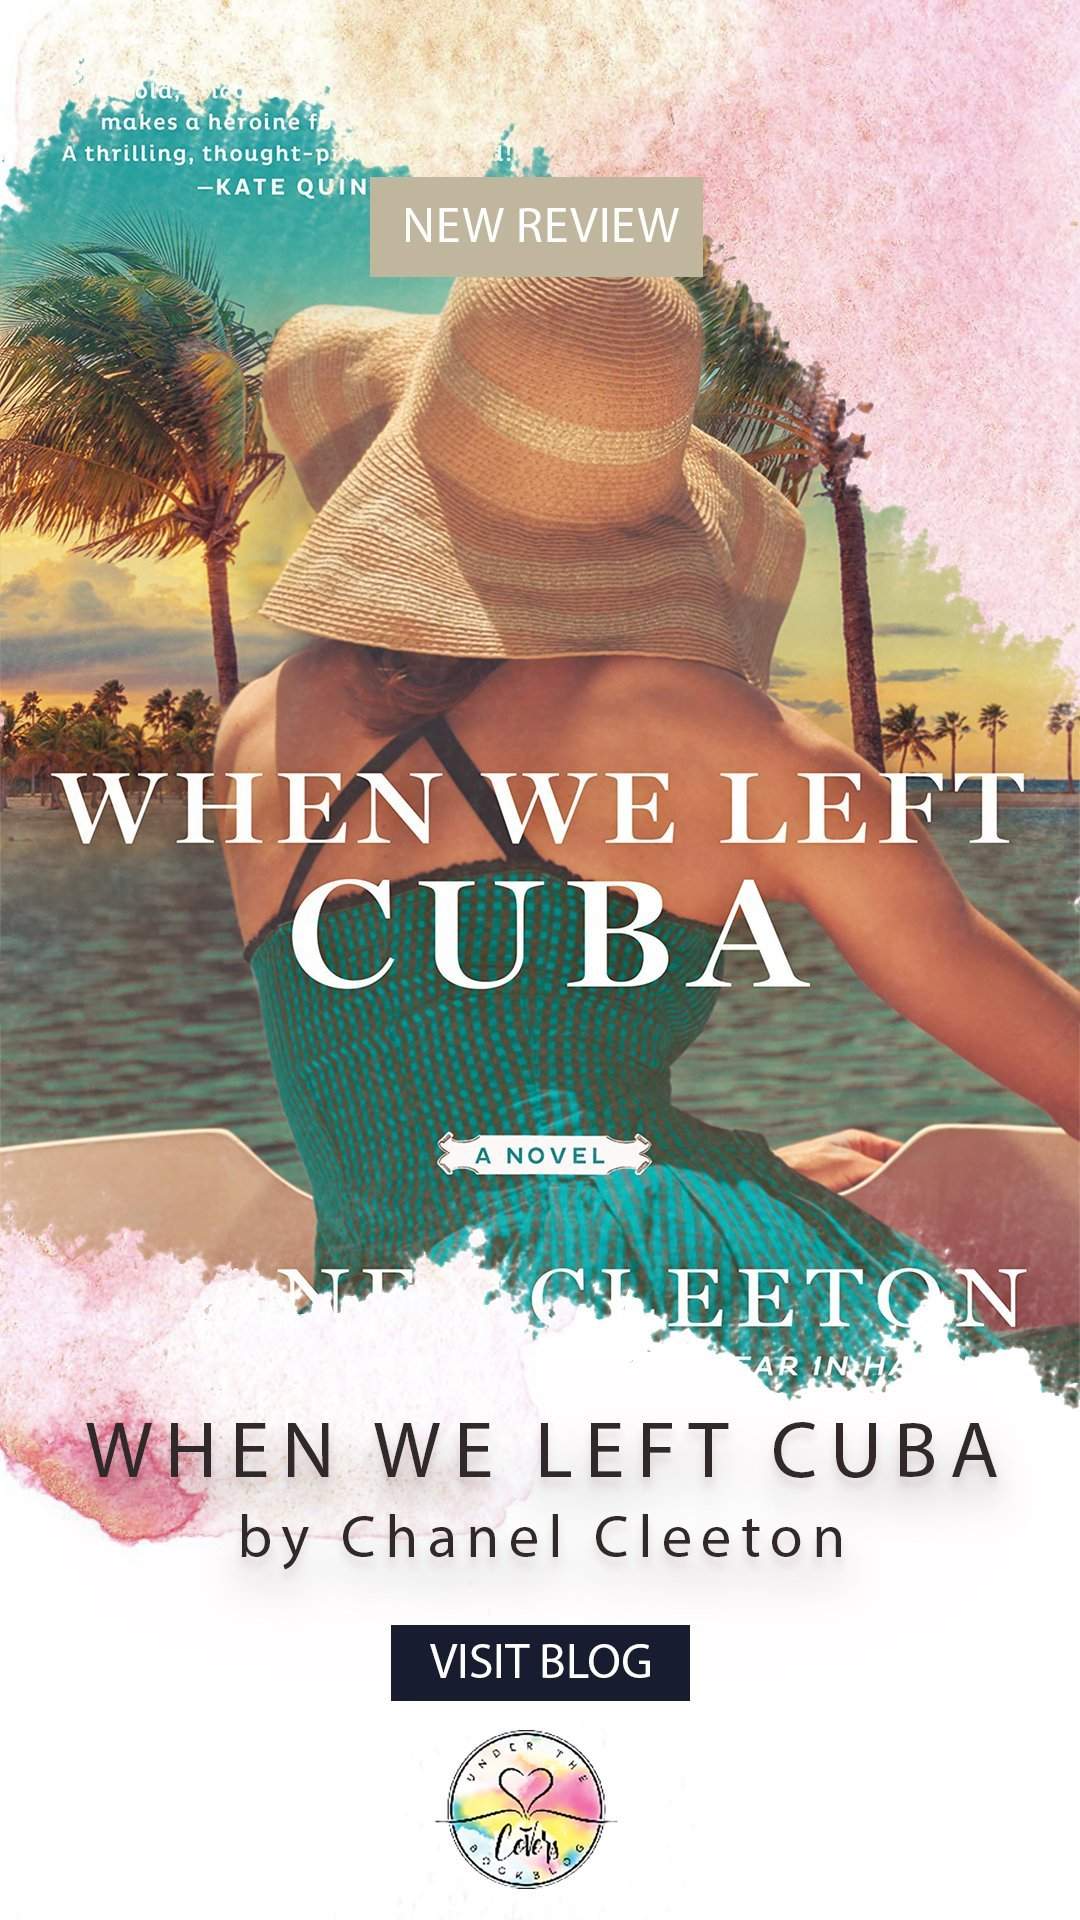 ARC Review: When We Left Cuba by Chanel Cleeton